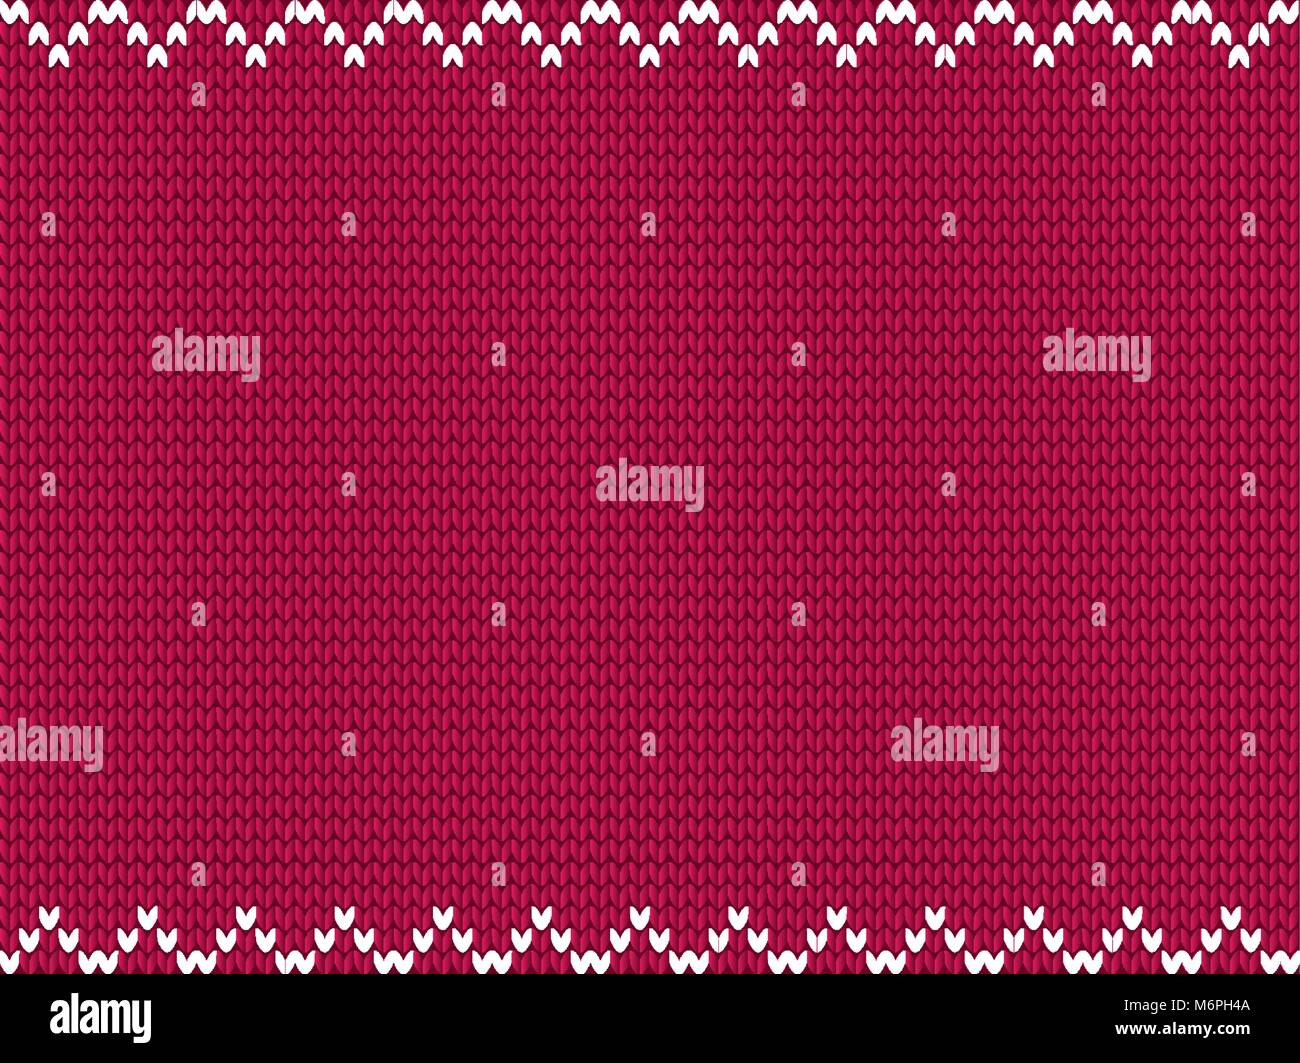 Burgundy knitted fabric background with white zig zag pattern. Vector illustration, template with space for text. - Stock Vector